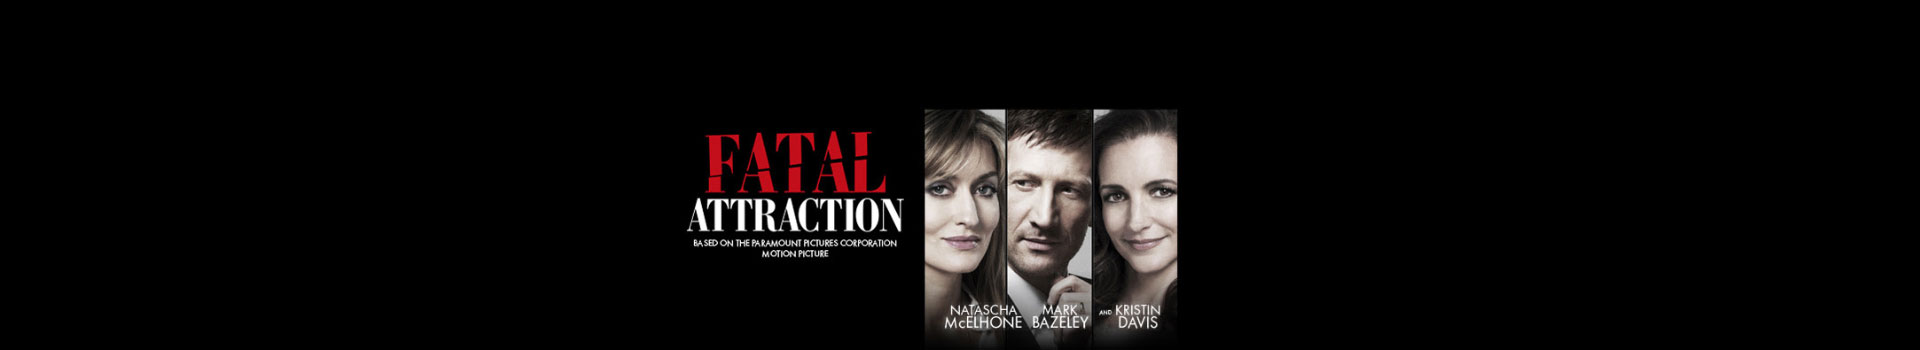 Fatal Attraction banner image